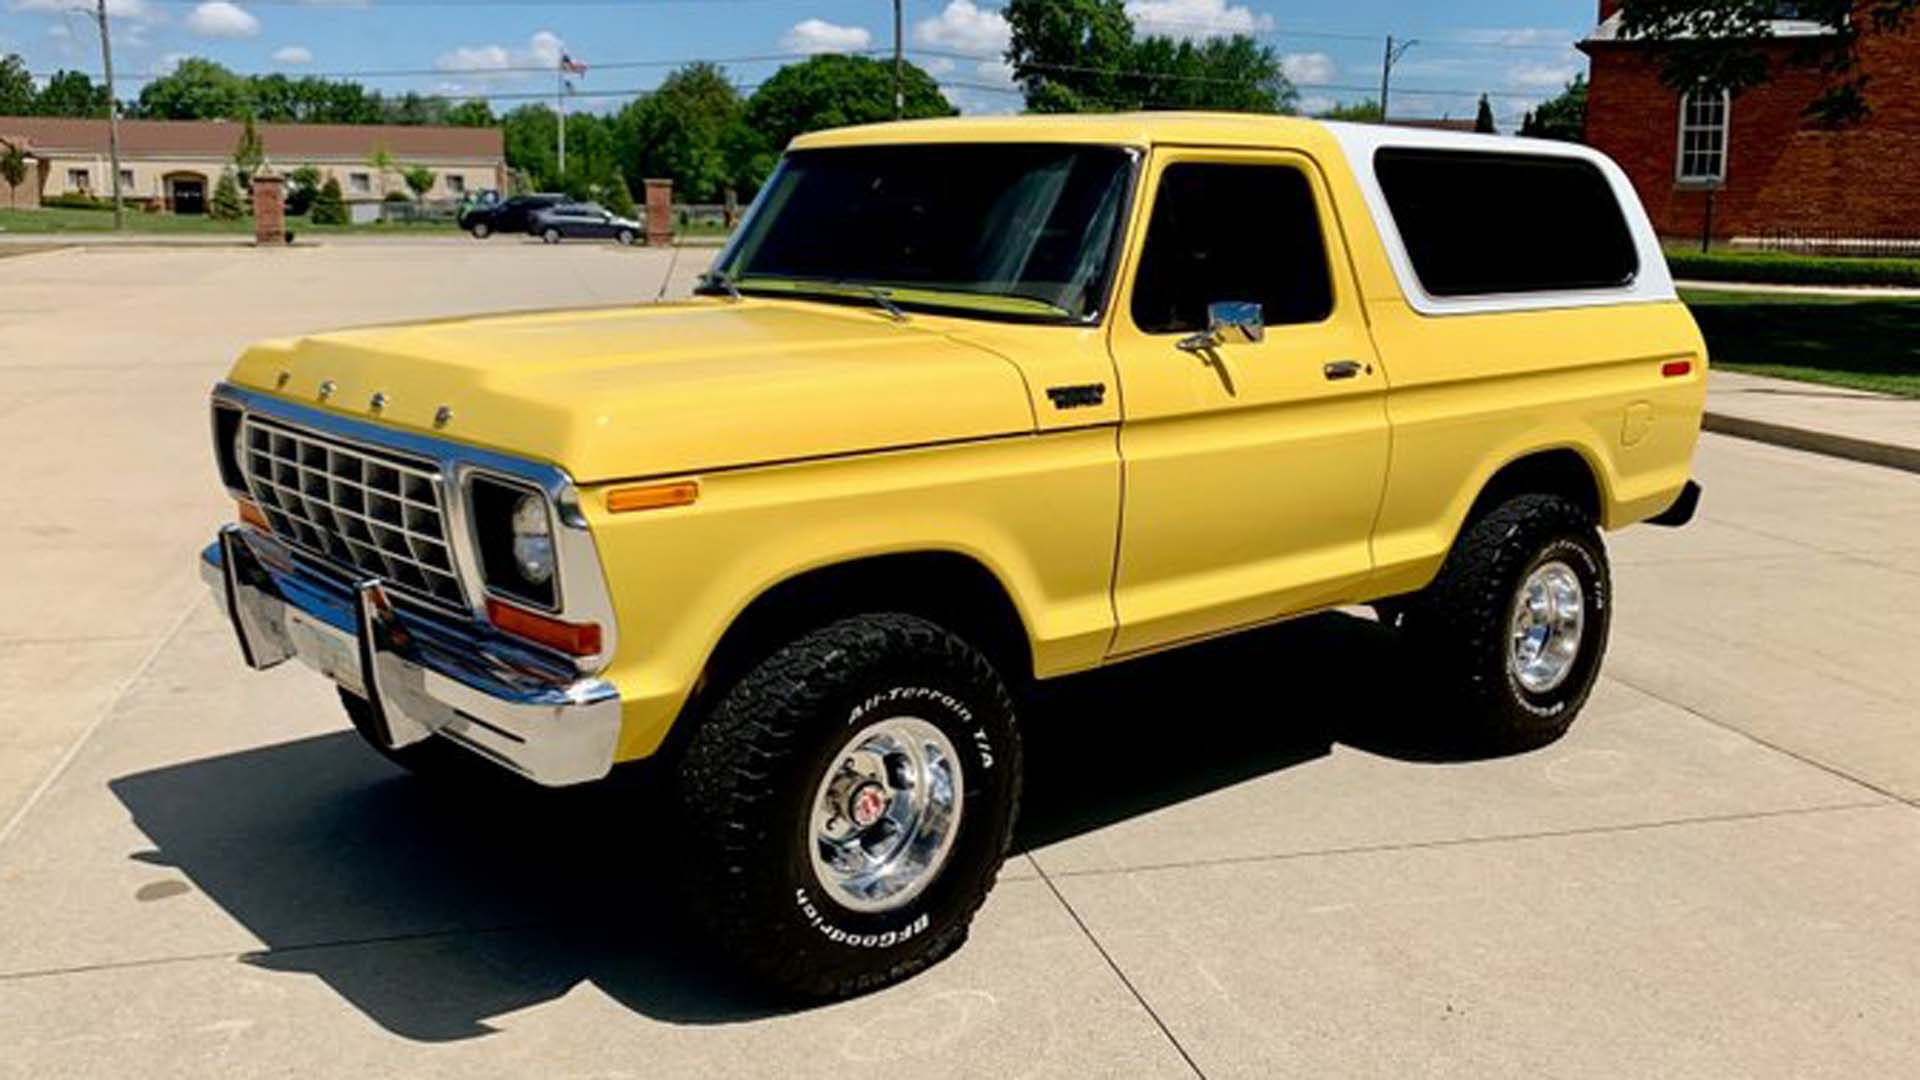 Catch Bronco Fever With This Restored 1978 Ford Bronco